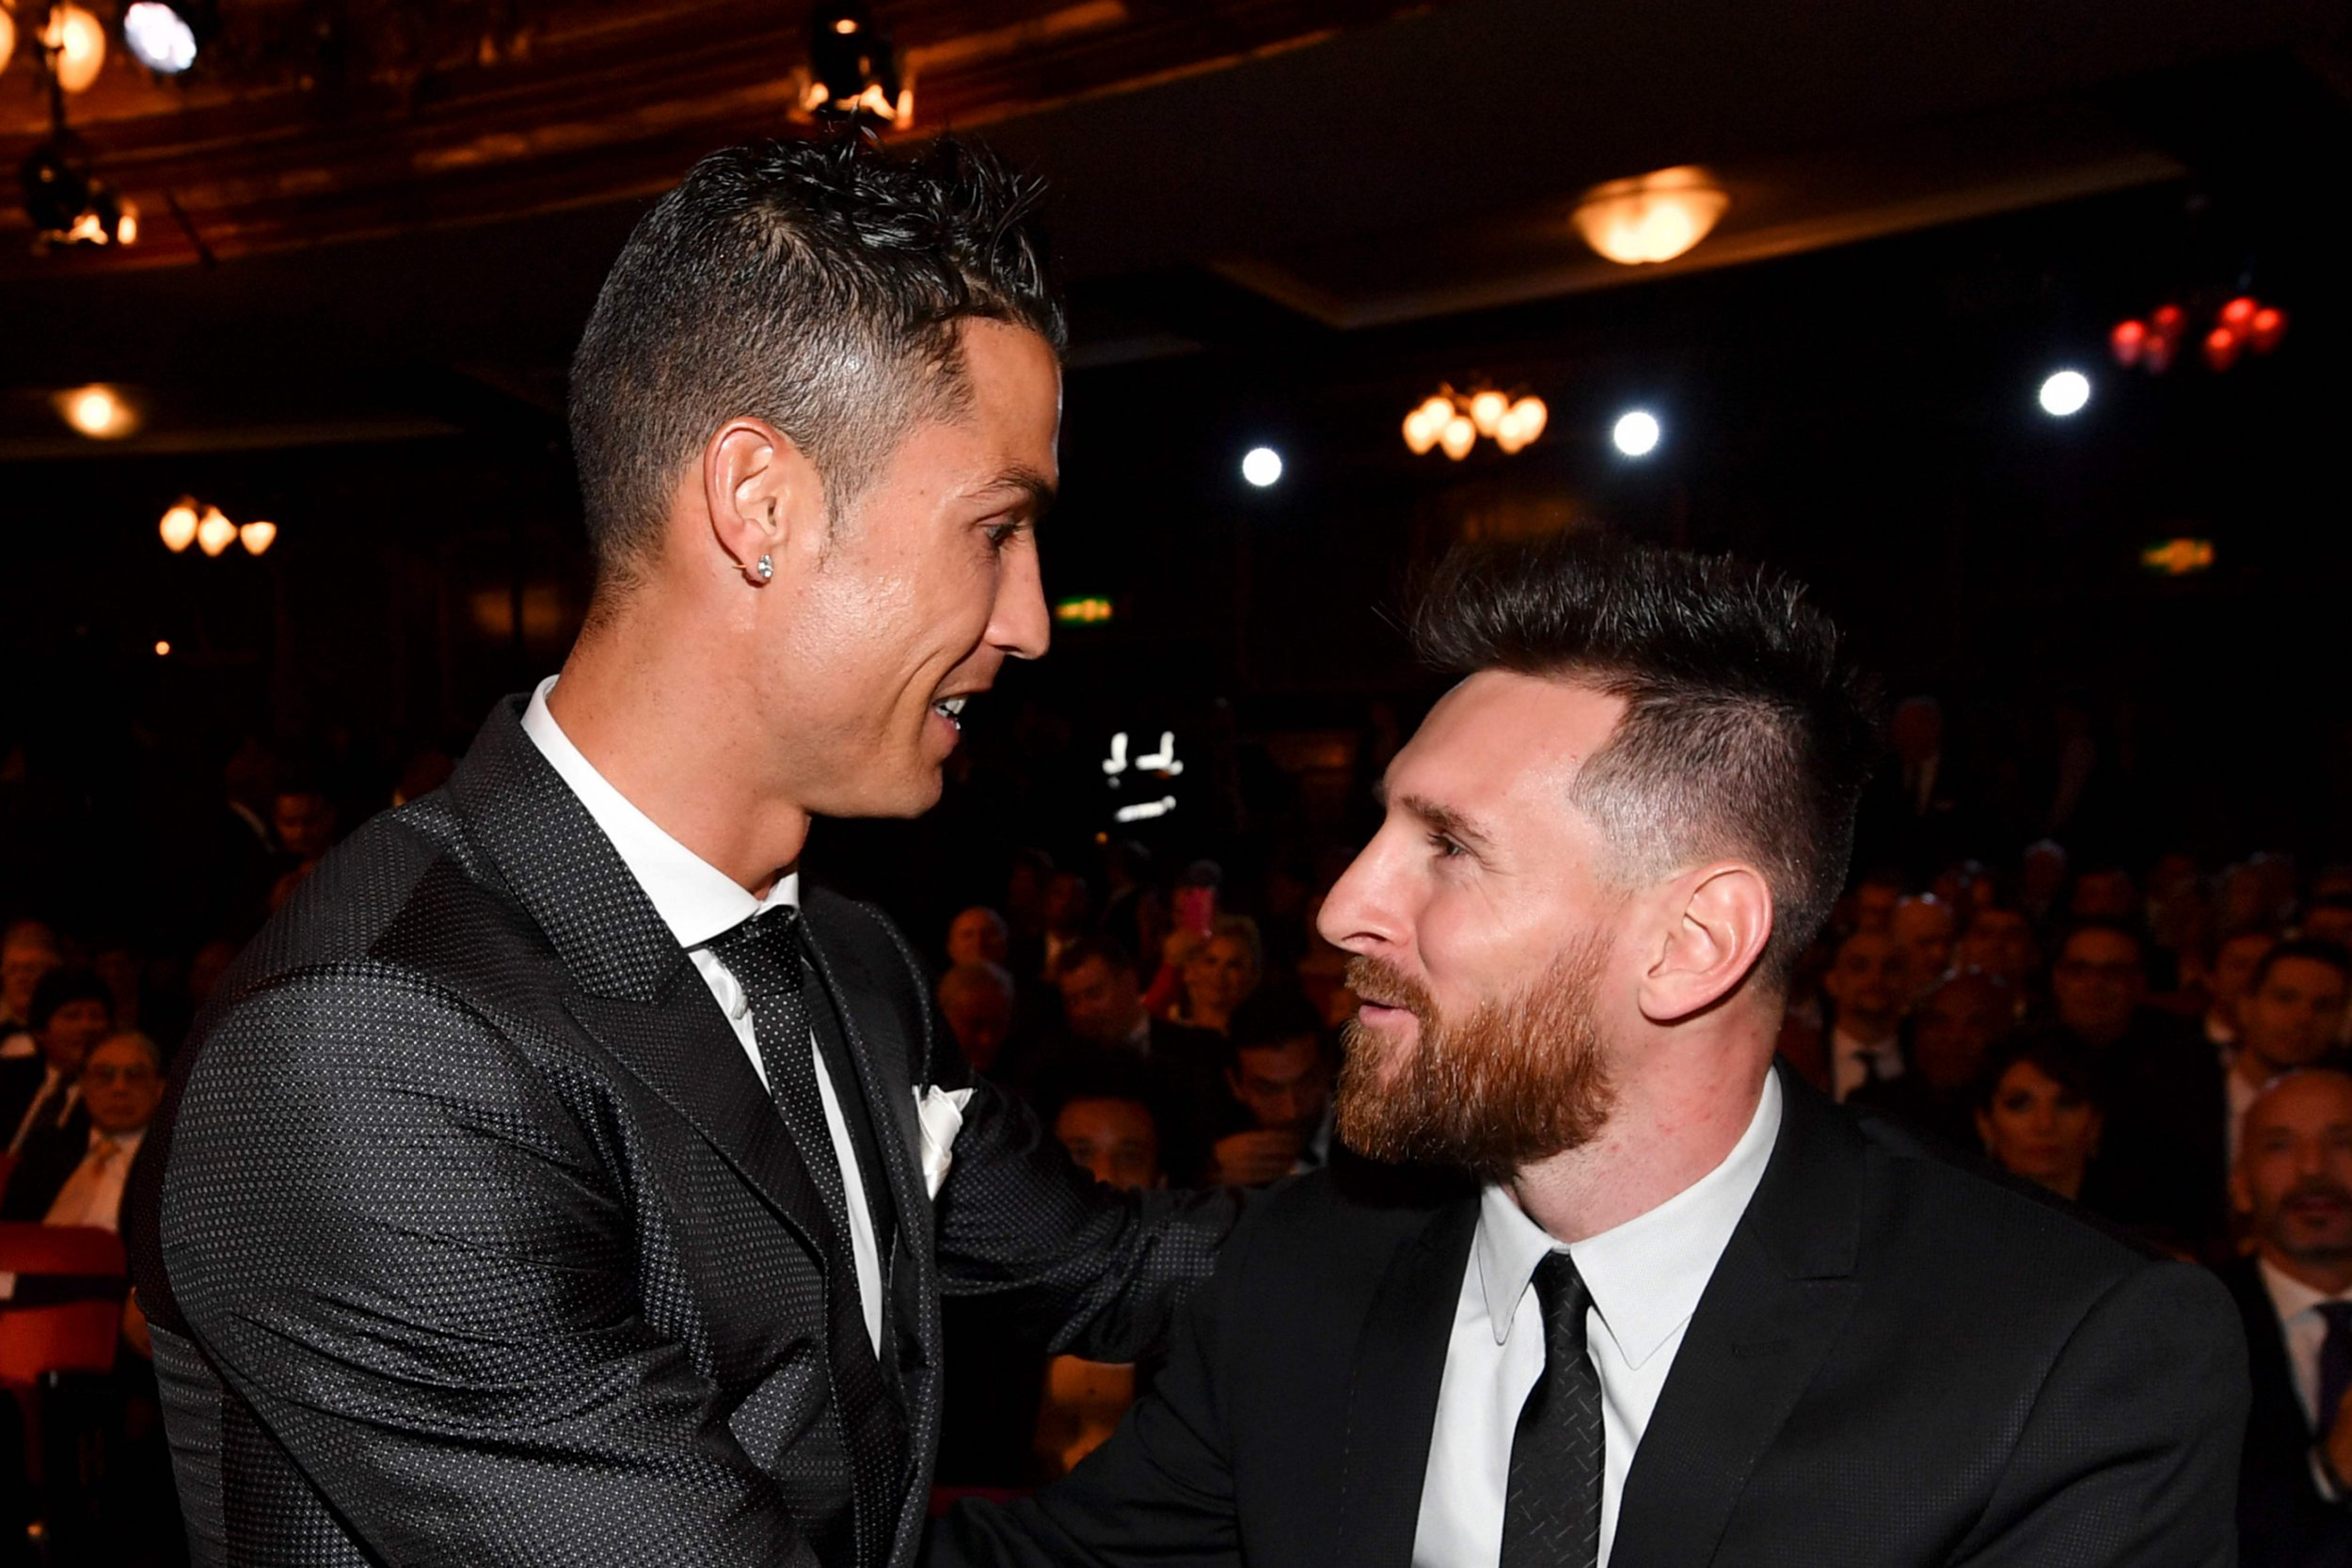 Cristiano Ronaldo beats Lionel Messi and Neymar to Best FIFA Men's Player award